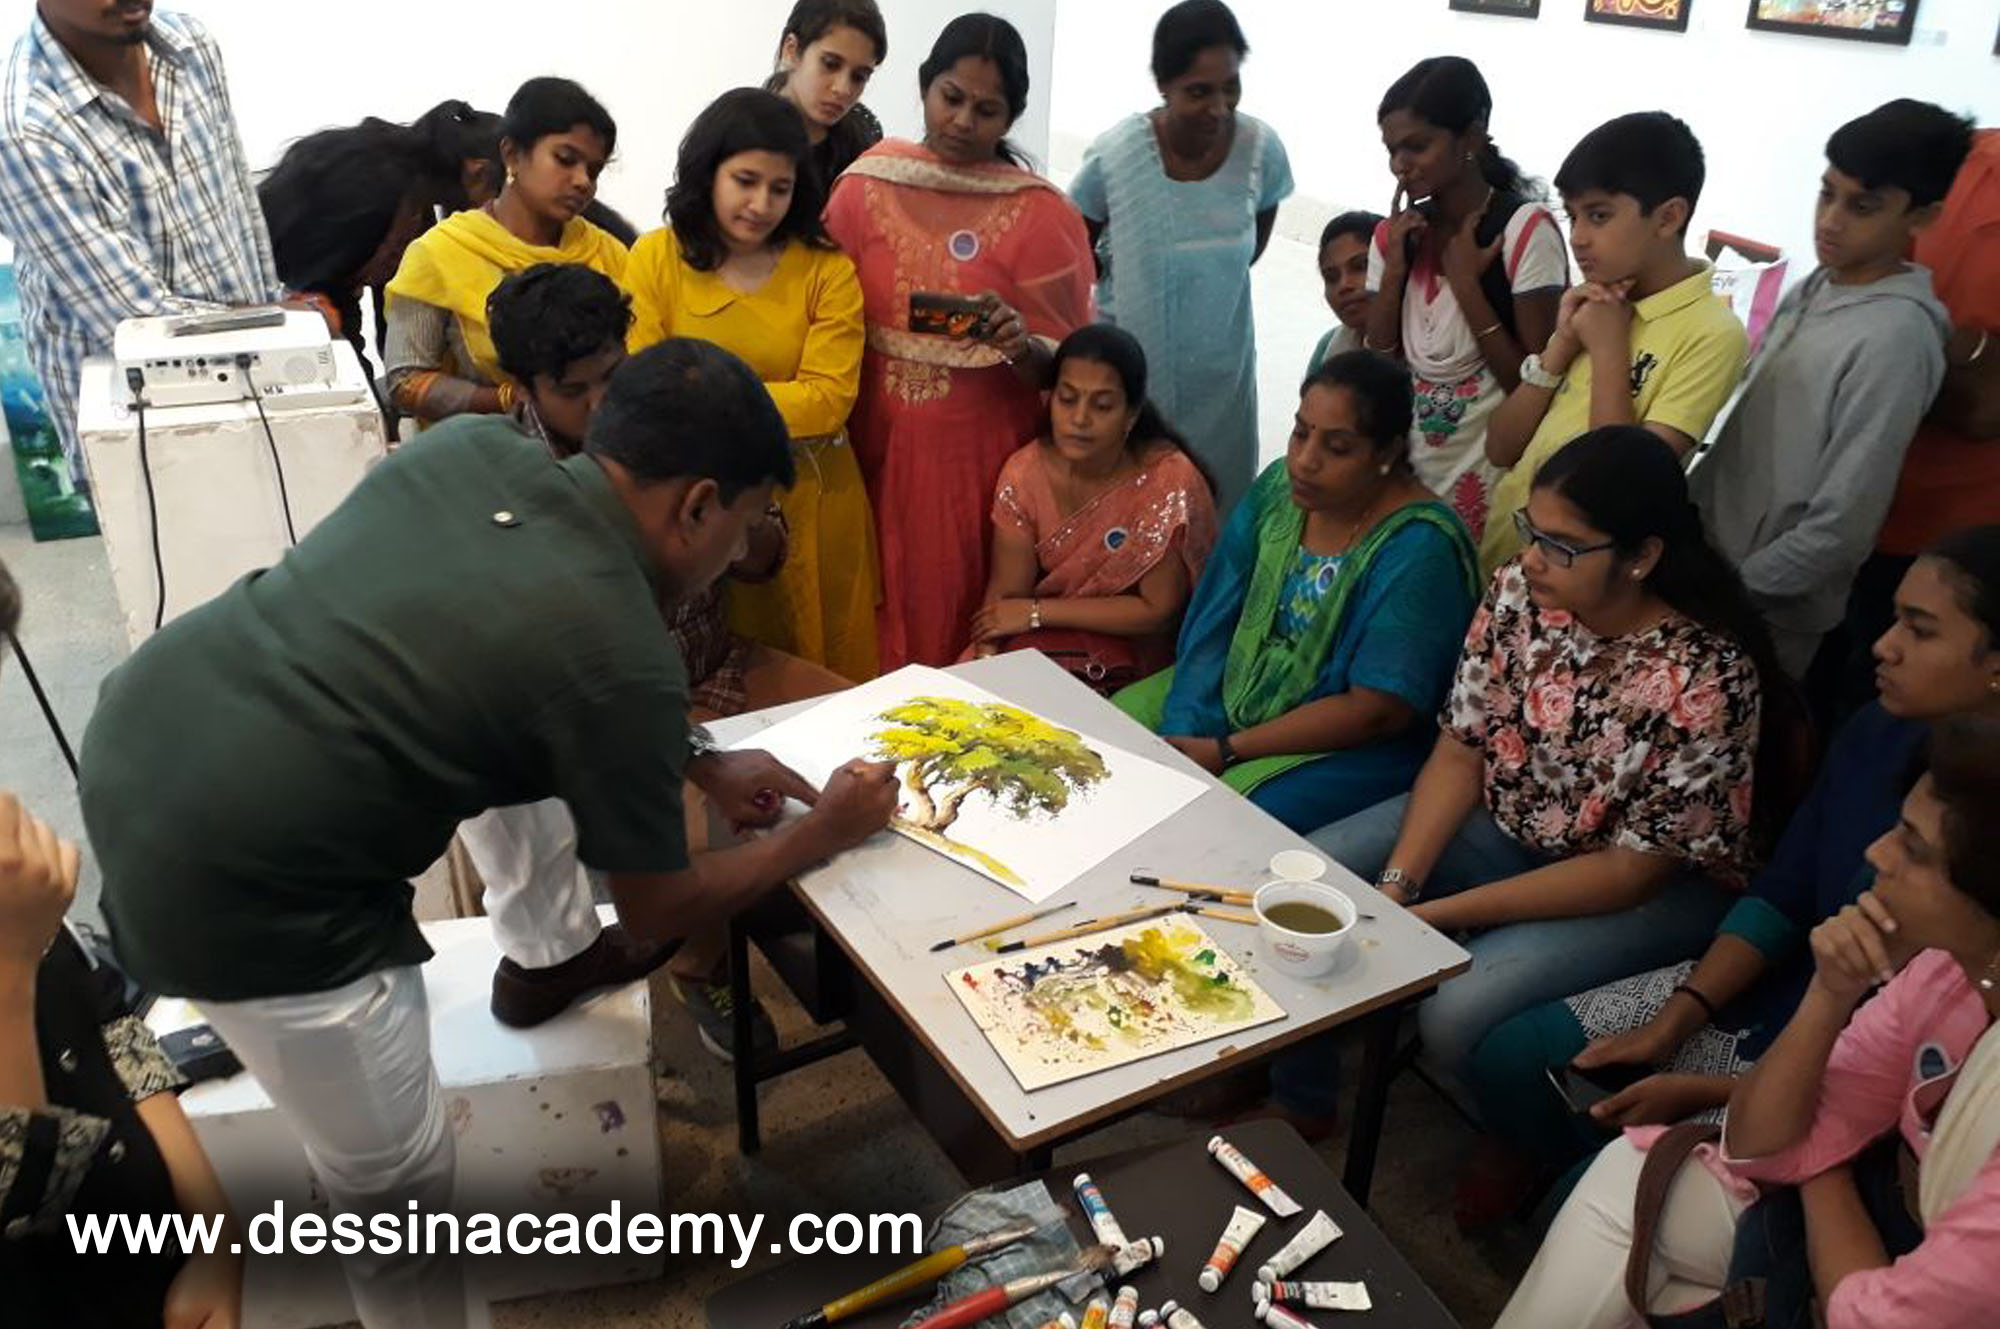 Dessin School of arts Event Gallery 6, sketching Coaching For Kids in Anna Nagar East L BlockDessin School of Arts